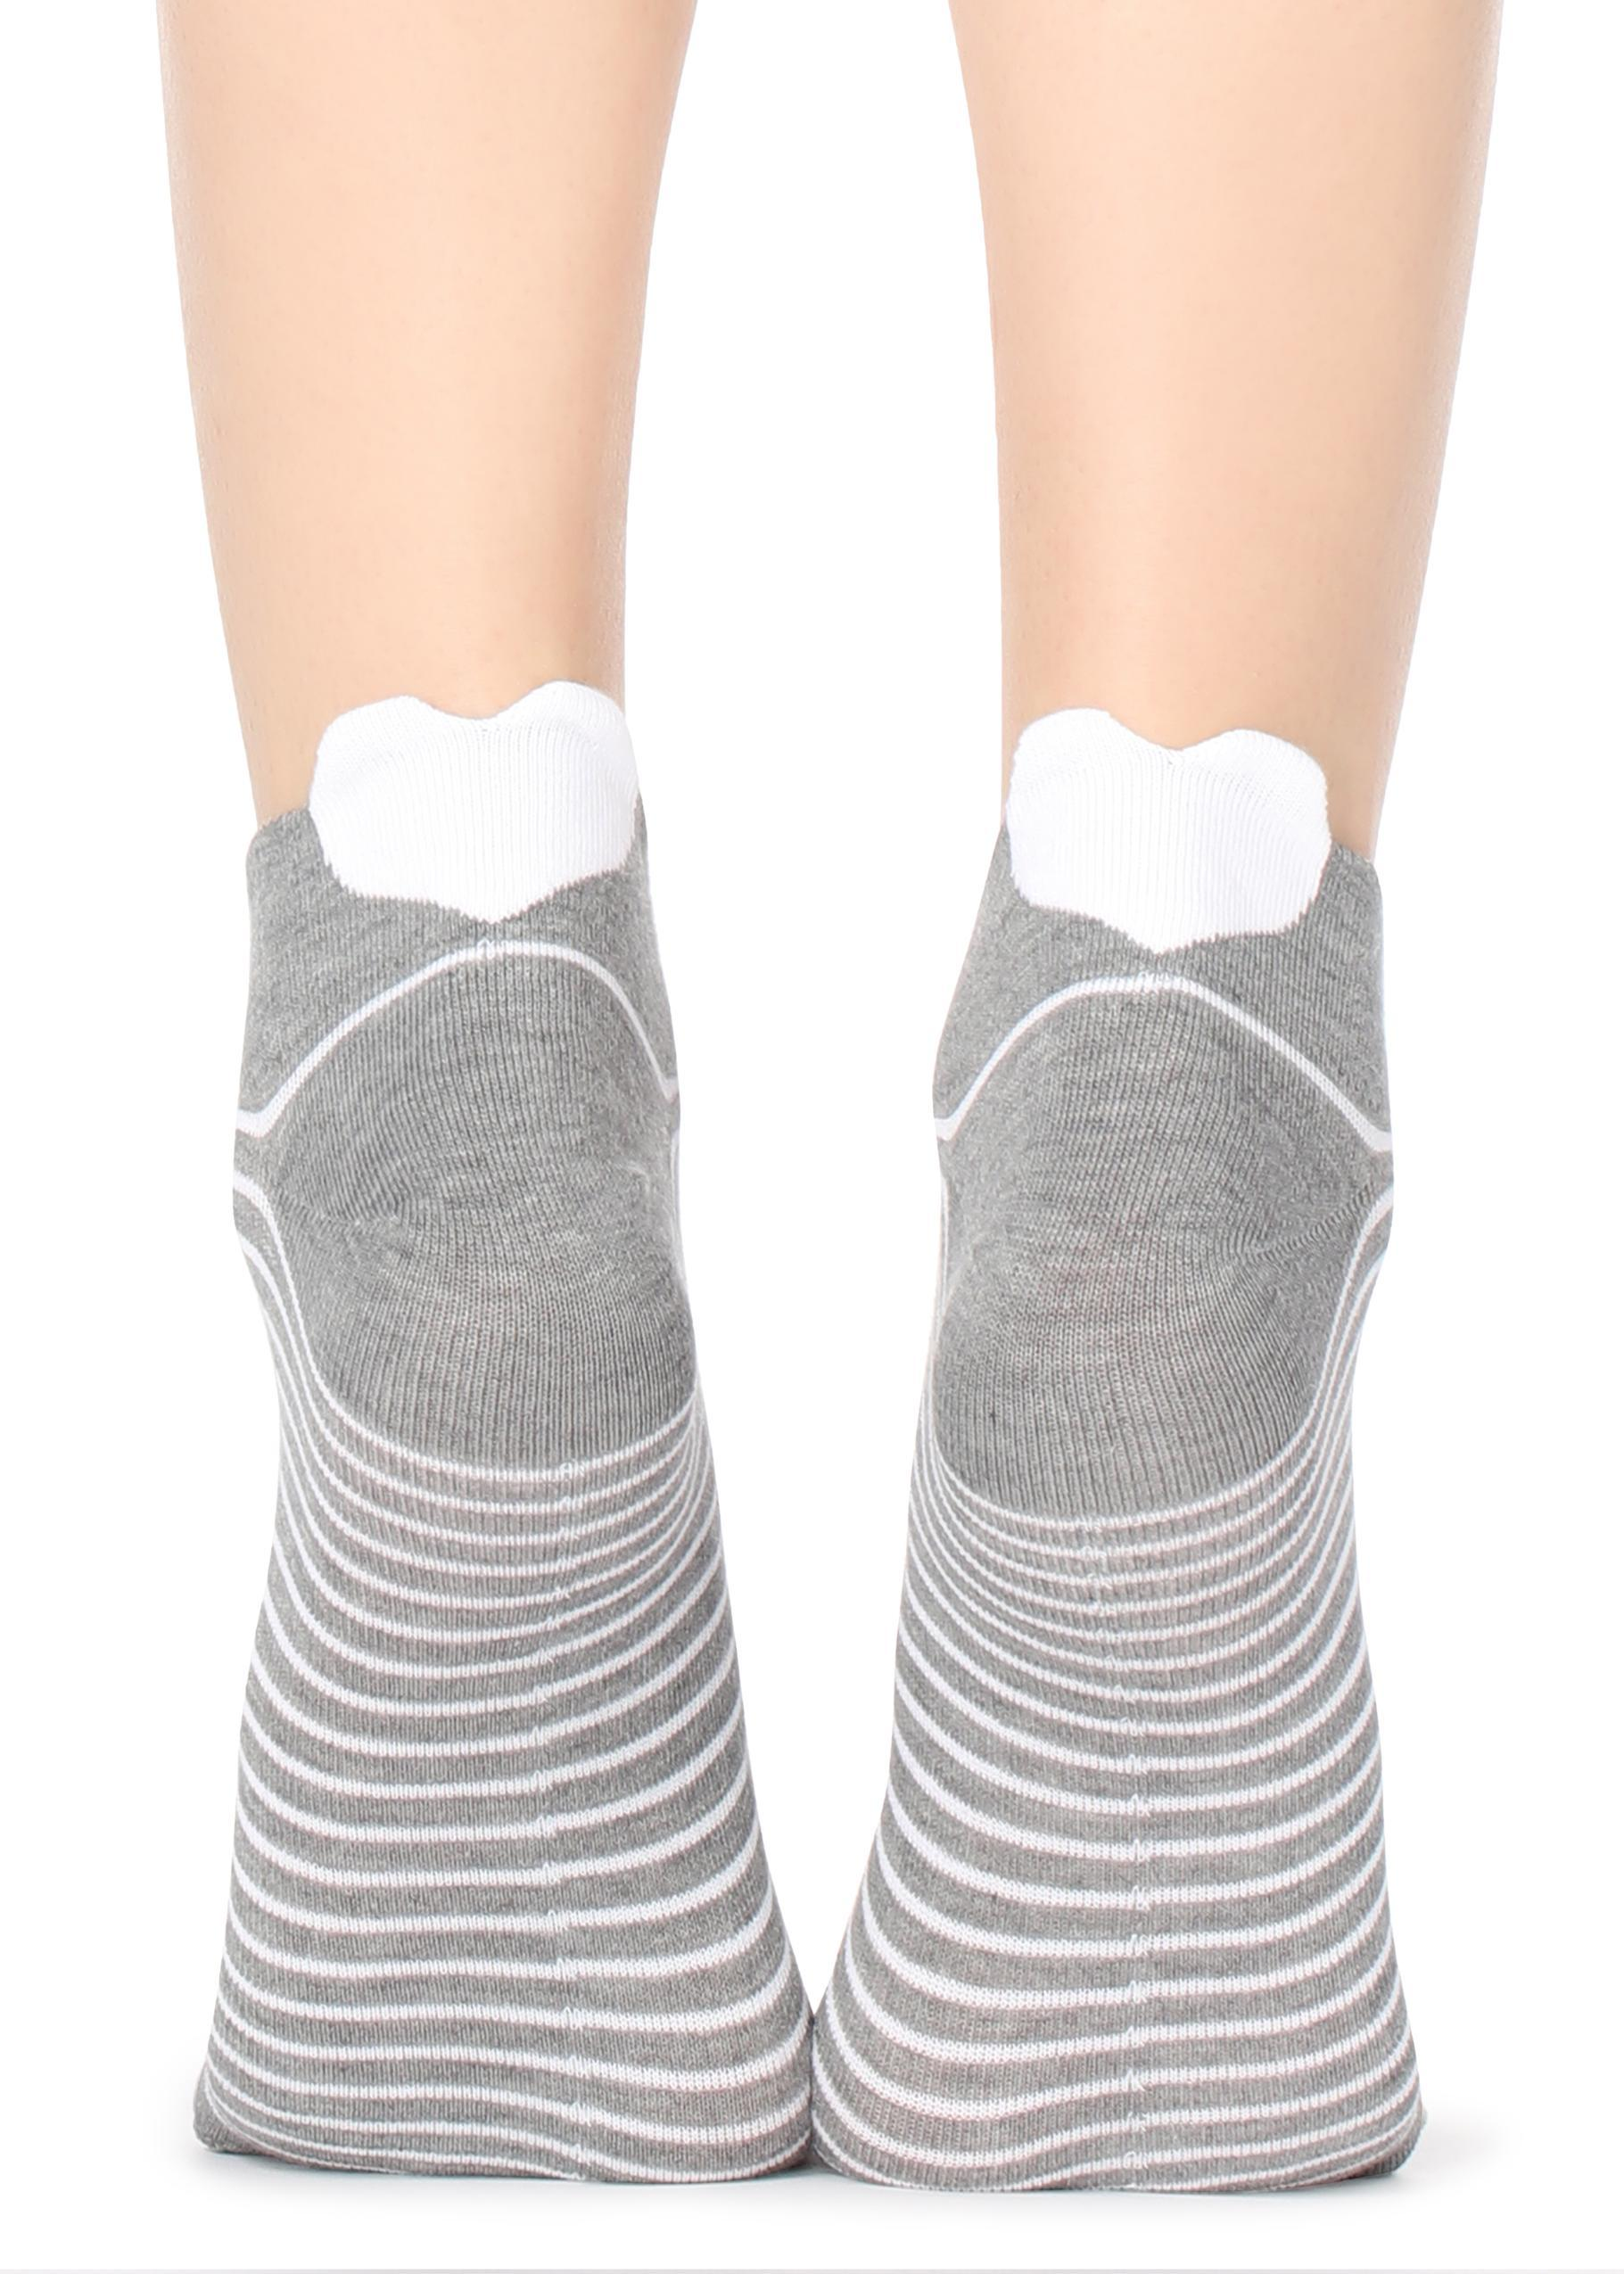 9424159c3 Lyst - Calzedonia Patterned No-show Socks in Gray